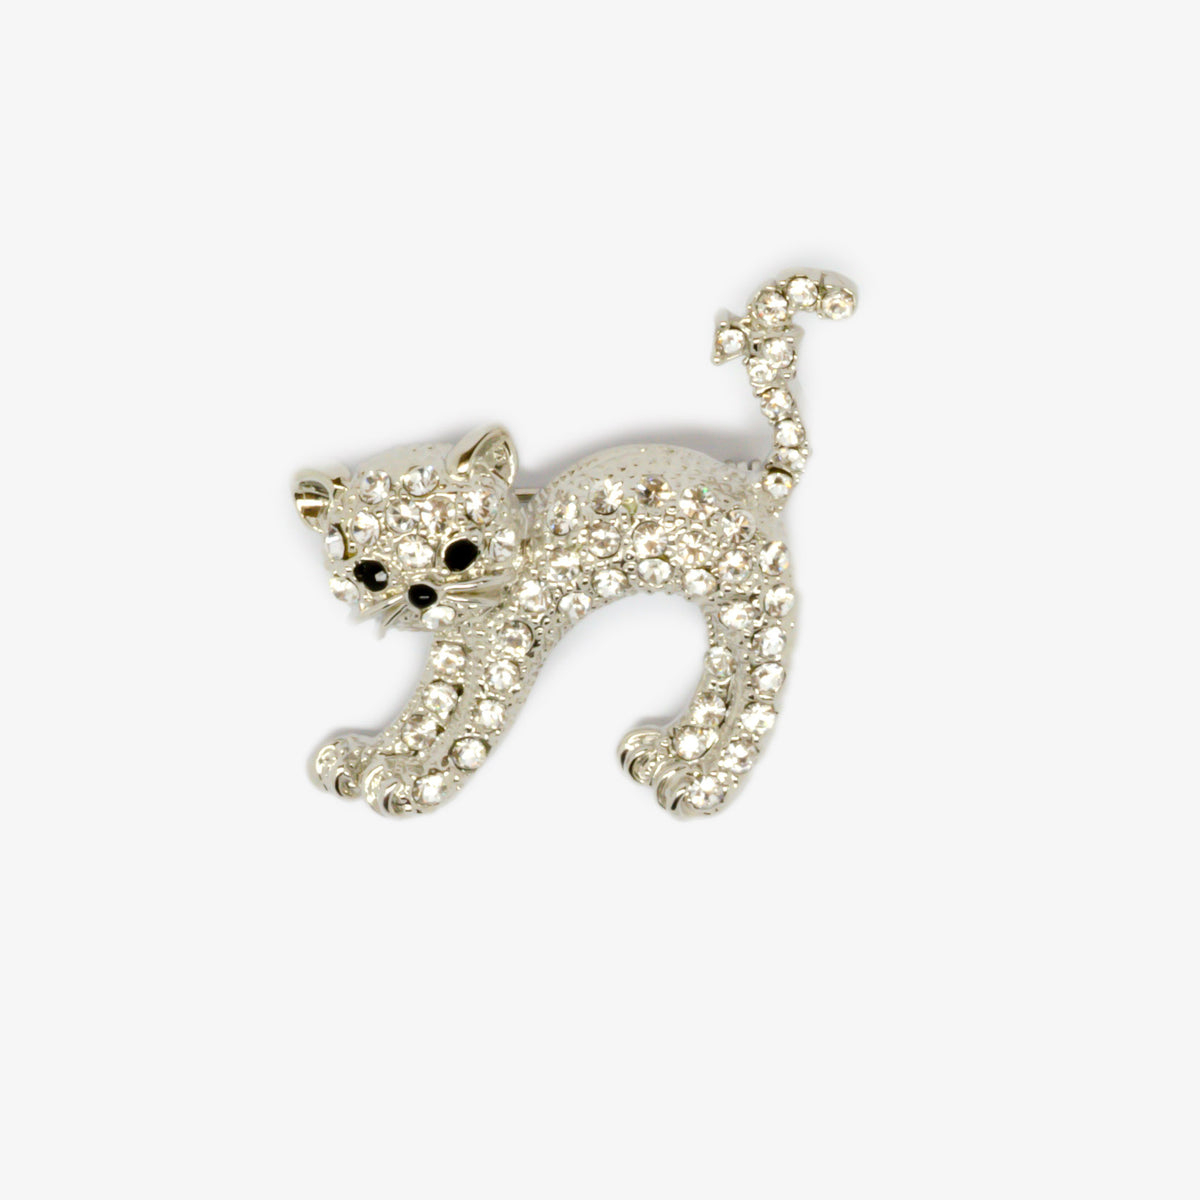 Arched Cat Brooch